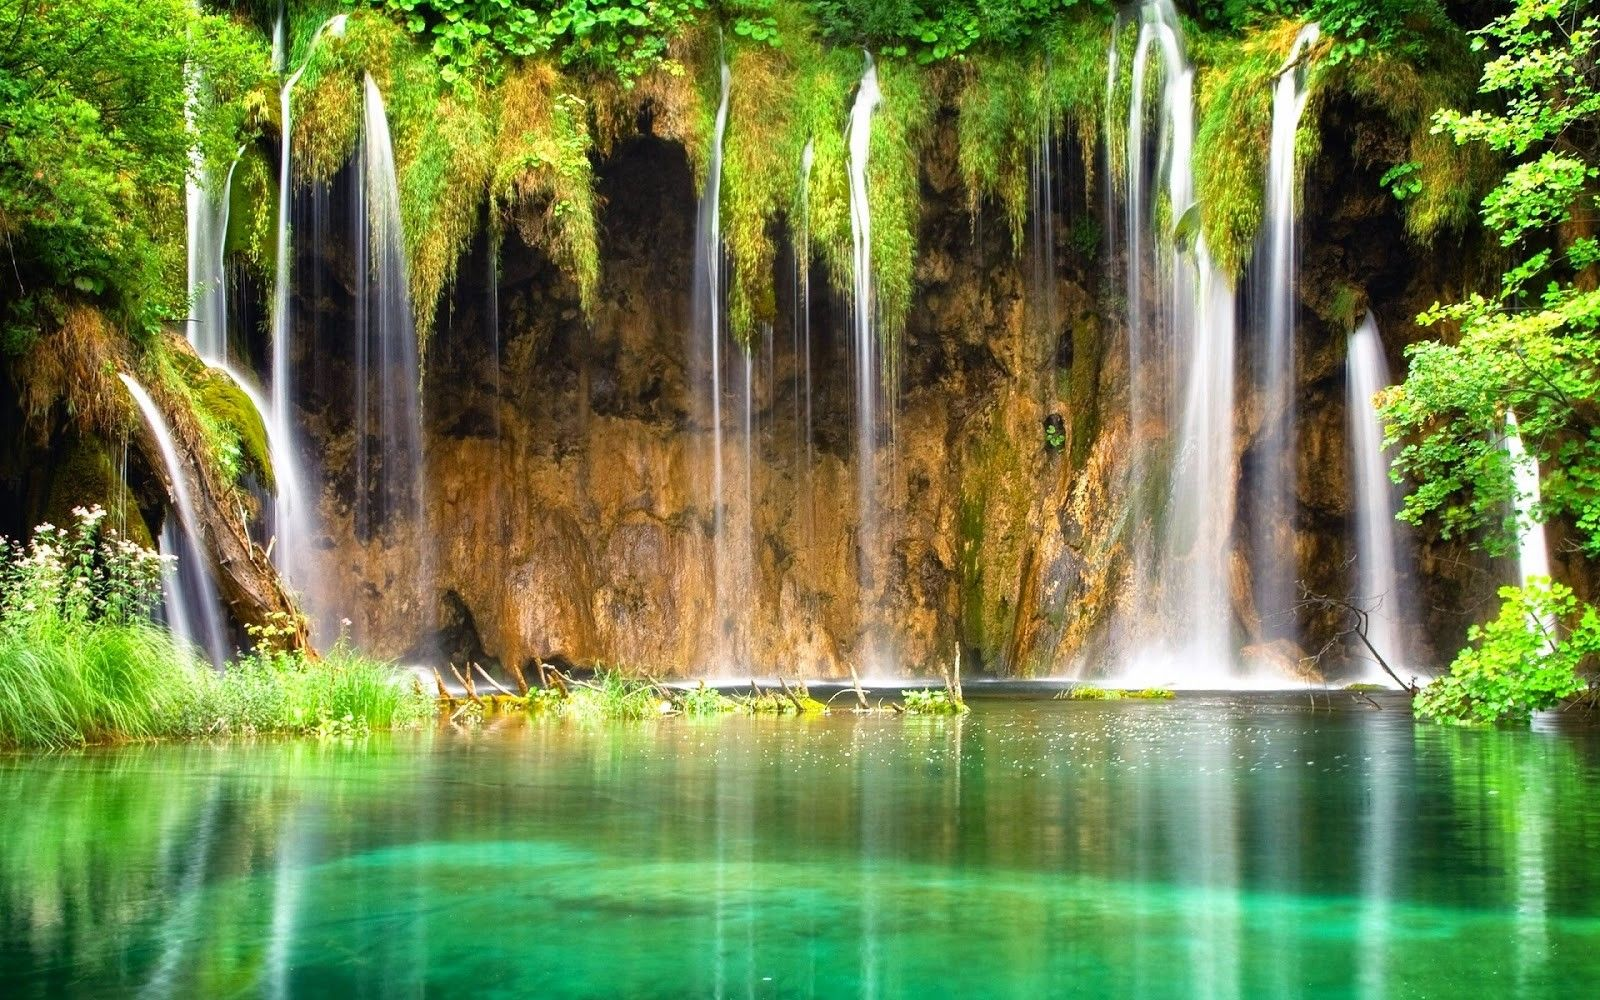 Hd wallpaper download nature - Hd Widescreen Nature Wallpapers Free Download